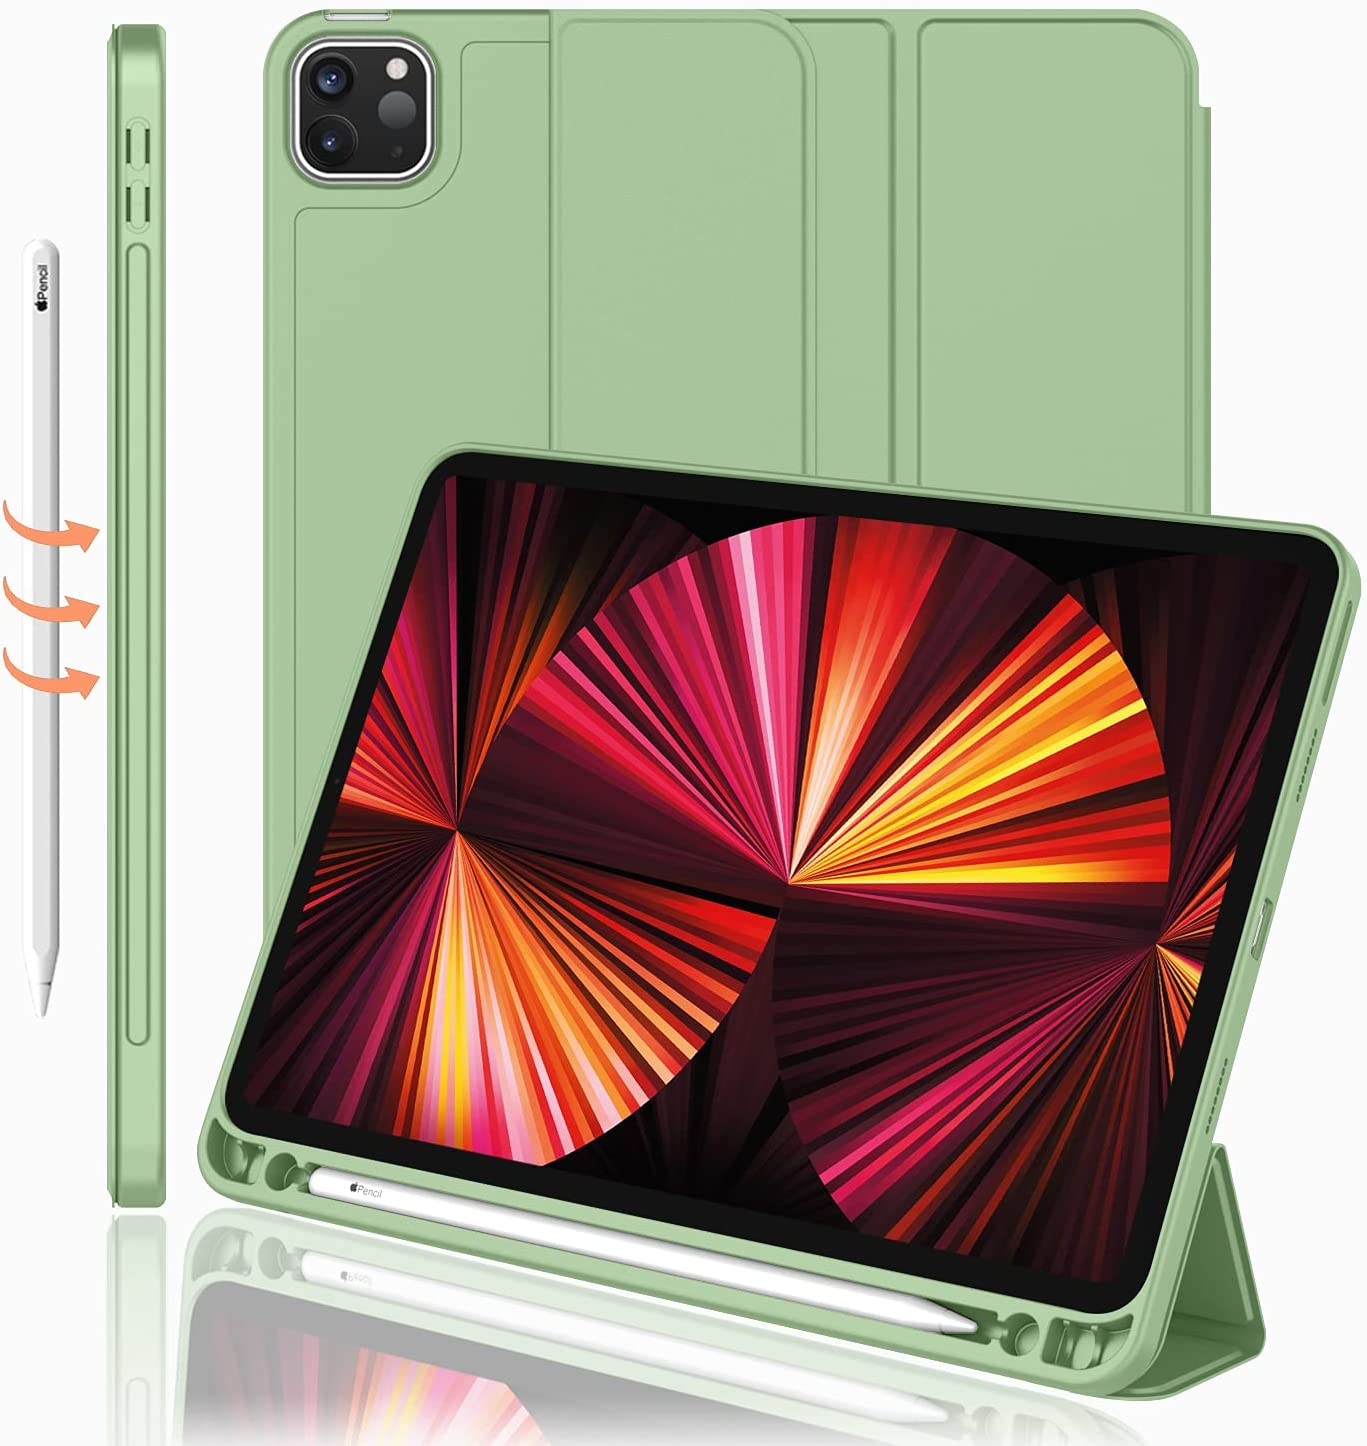 iMieet New iPad Pro 11 Inch Case 2021(3rd Gen) with Pencil Holder [Support iPad 2nd Pencil Charging/Pair],Trifold Stand Smart Case with Soft TPU Back,Auto Wake/Sleep(Matcha Green)